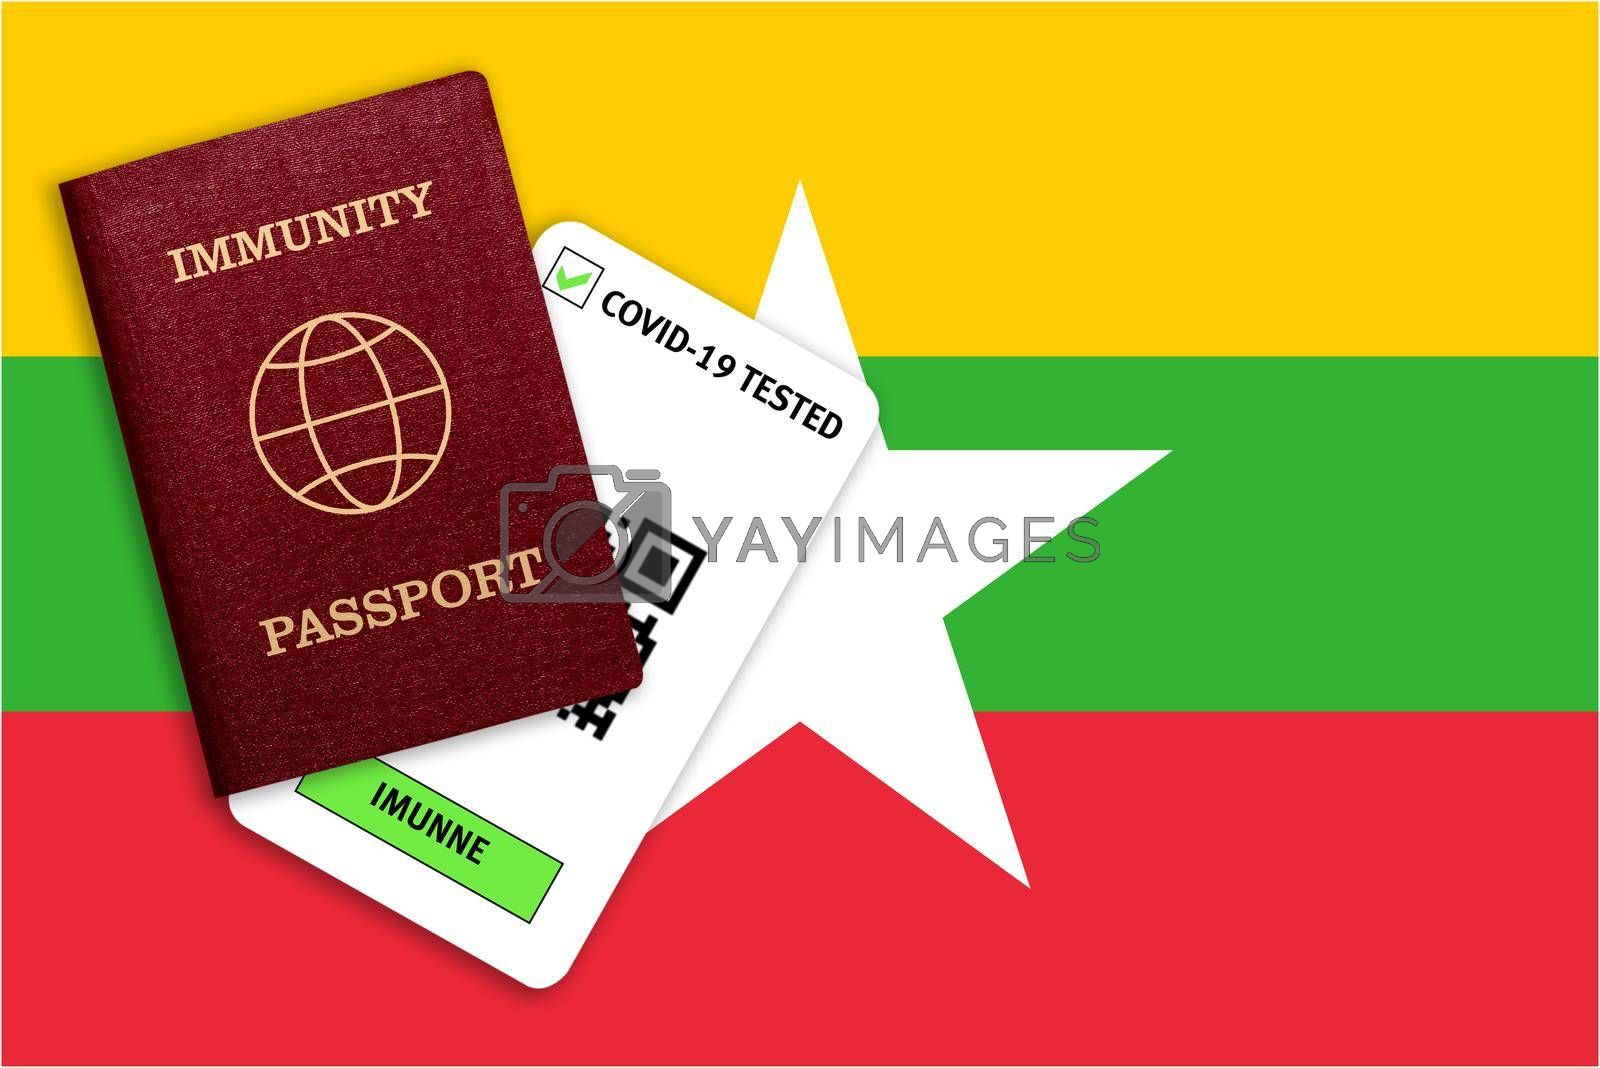 Concept of Immunity passport, certificate for traveling after pandemic for people who have had coronavirus or made vaccine and test result for COVID-19 on flag of Myanmar